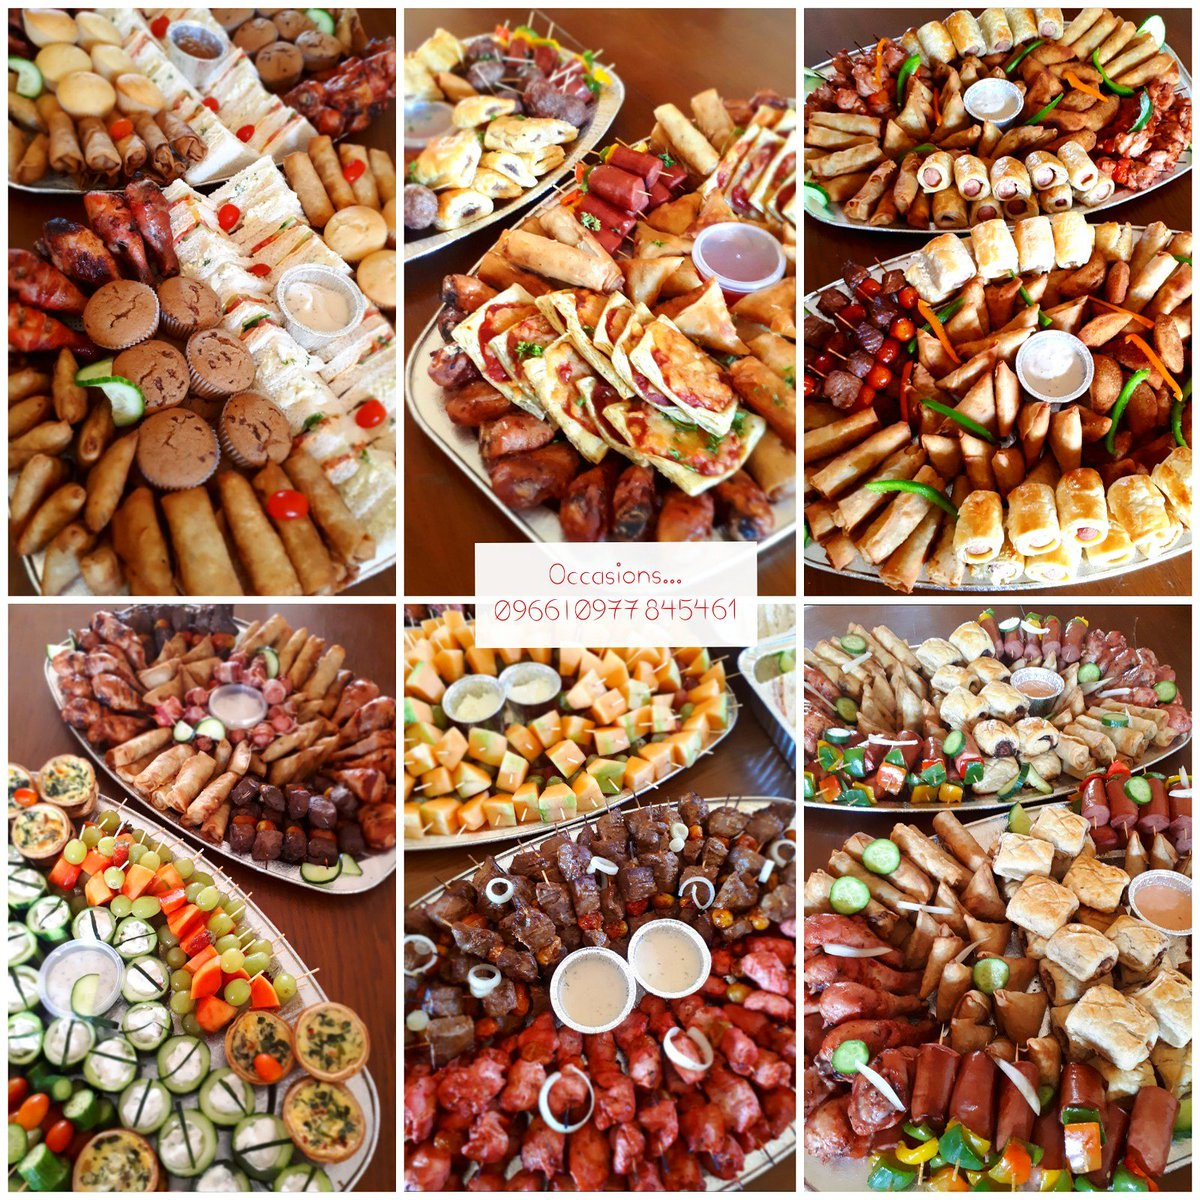 Occasions On Twitter Fresh Custom Finger Food Platters To Book Us For Your Next Event Corporatemeeting Workshop Officeparty Birthdayparty Kidsparty Cocktailparty Babyshower Bridalshower Memorial Breakfast Brunch Lunch Hightea Snackplatters